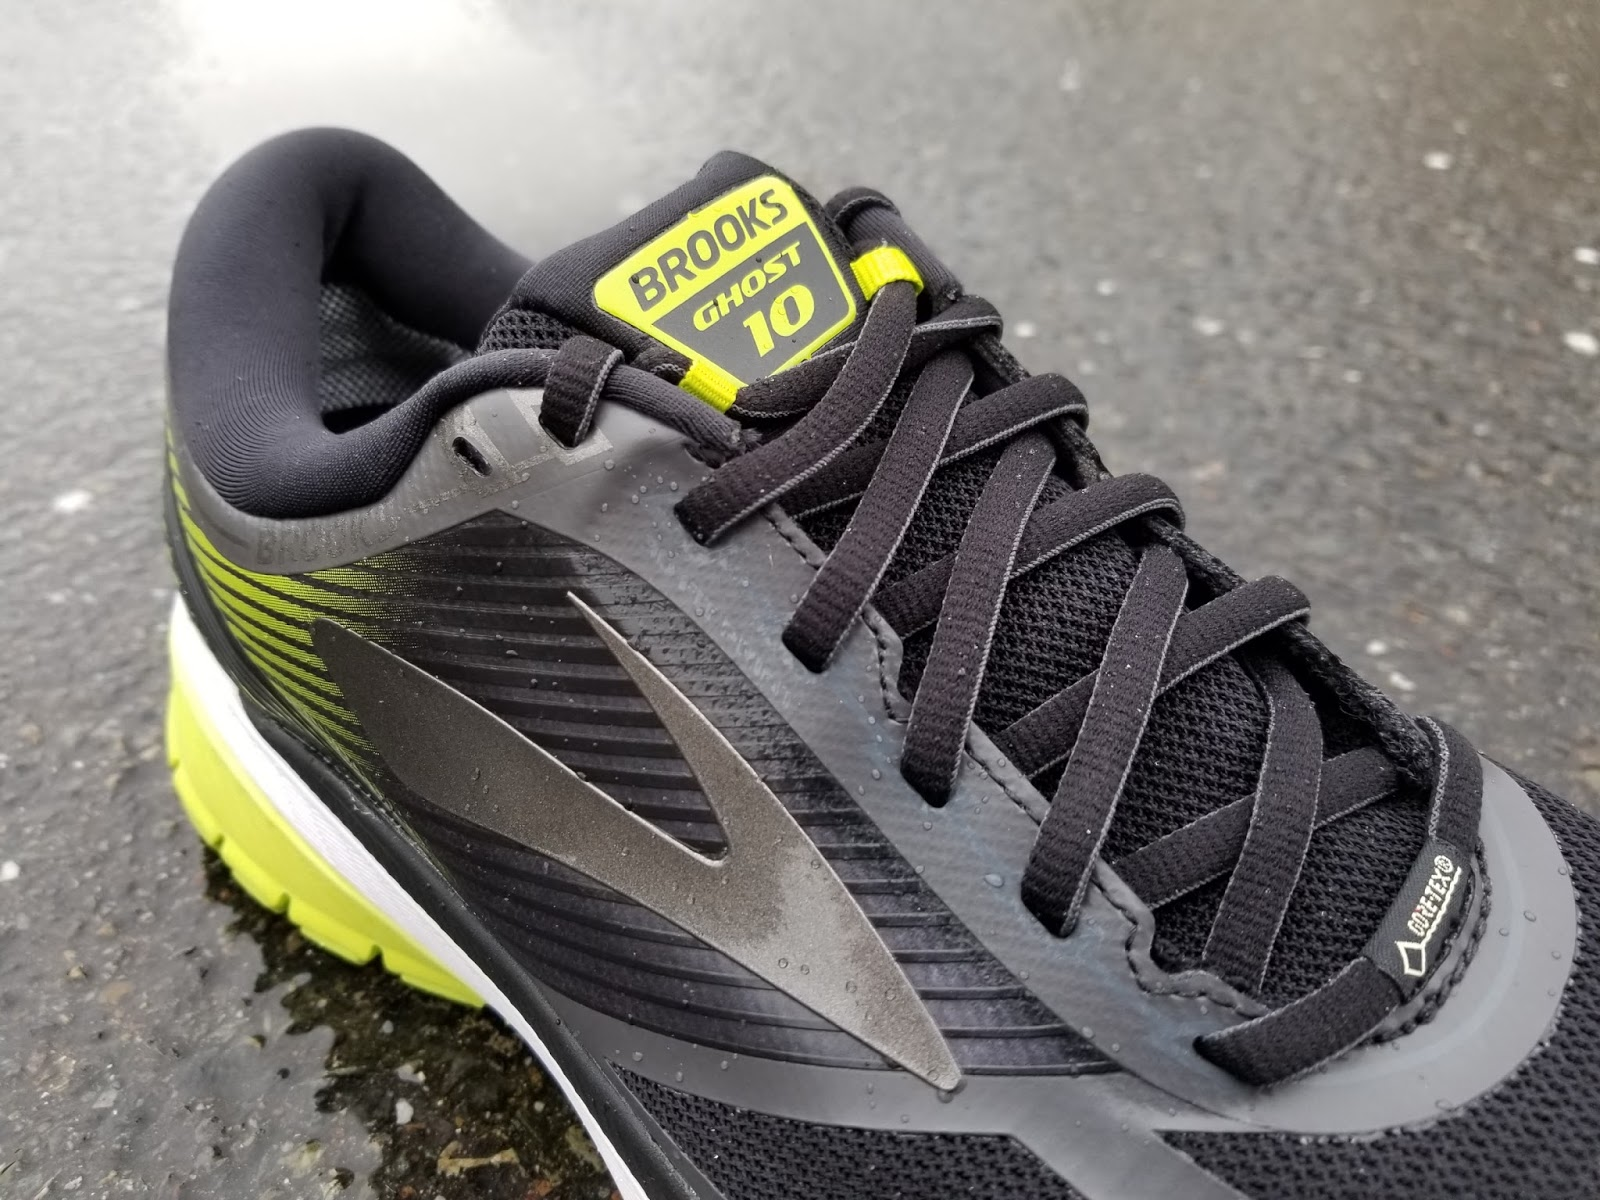 8ae609620f7 I have put over 50 miles on the Ghost 10 GTX and I really like the feel and  comfort of the shoe. The smooth transition and flexible outsole make running  in ...